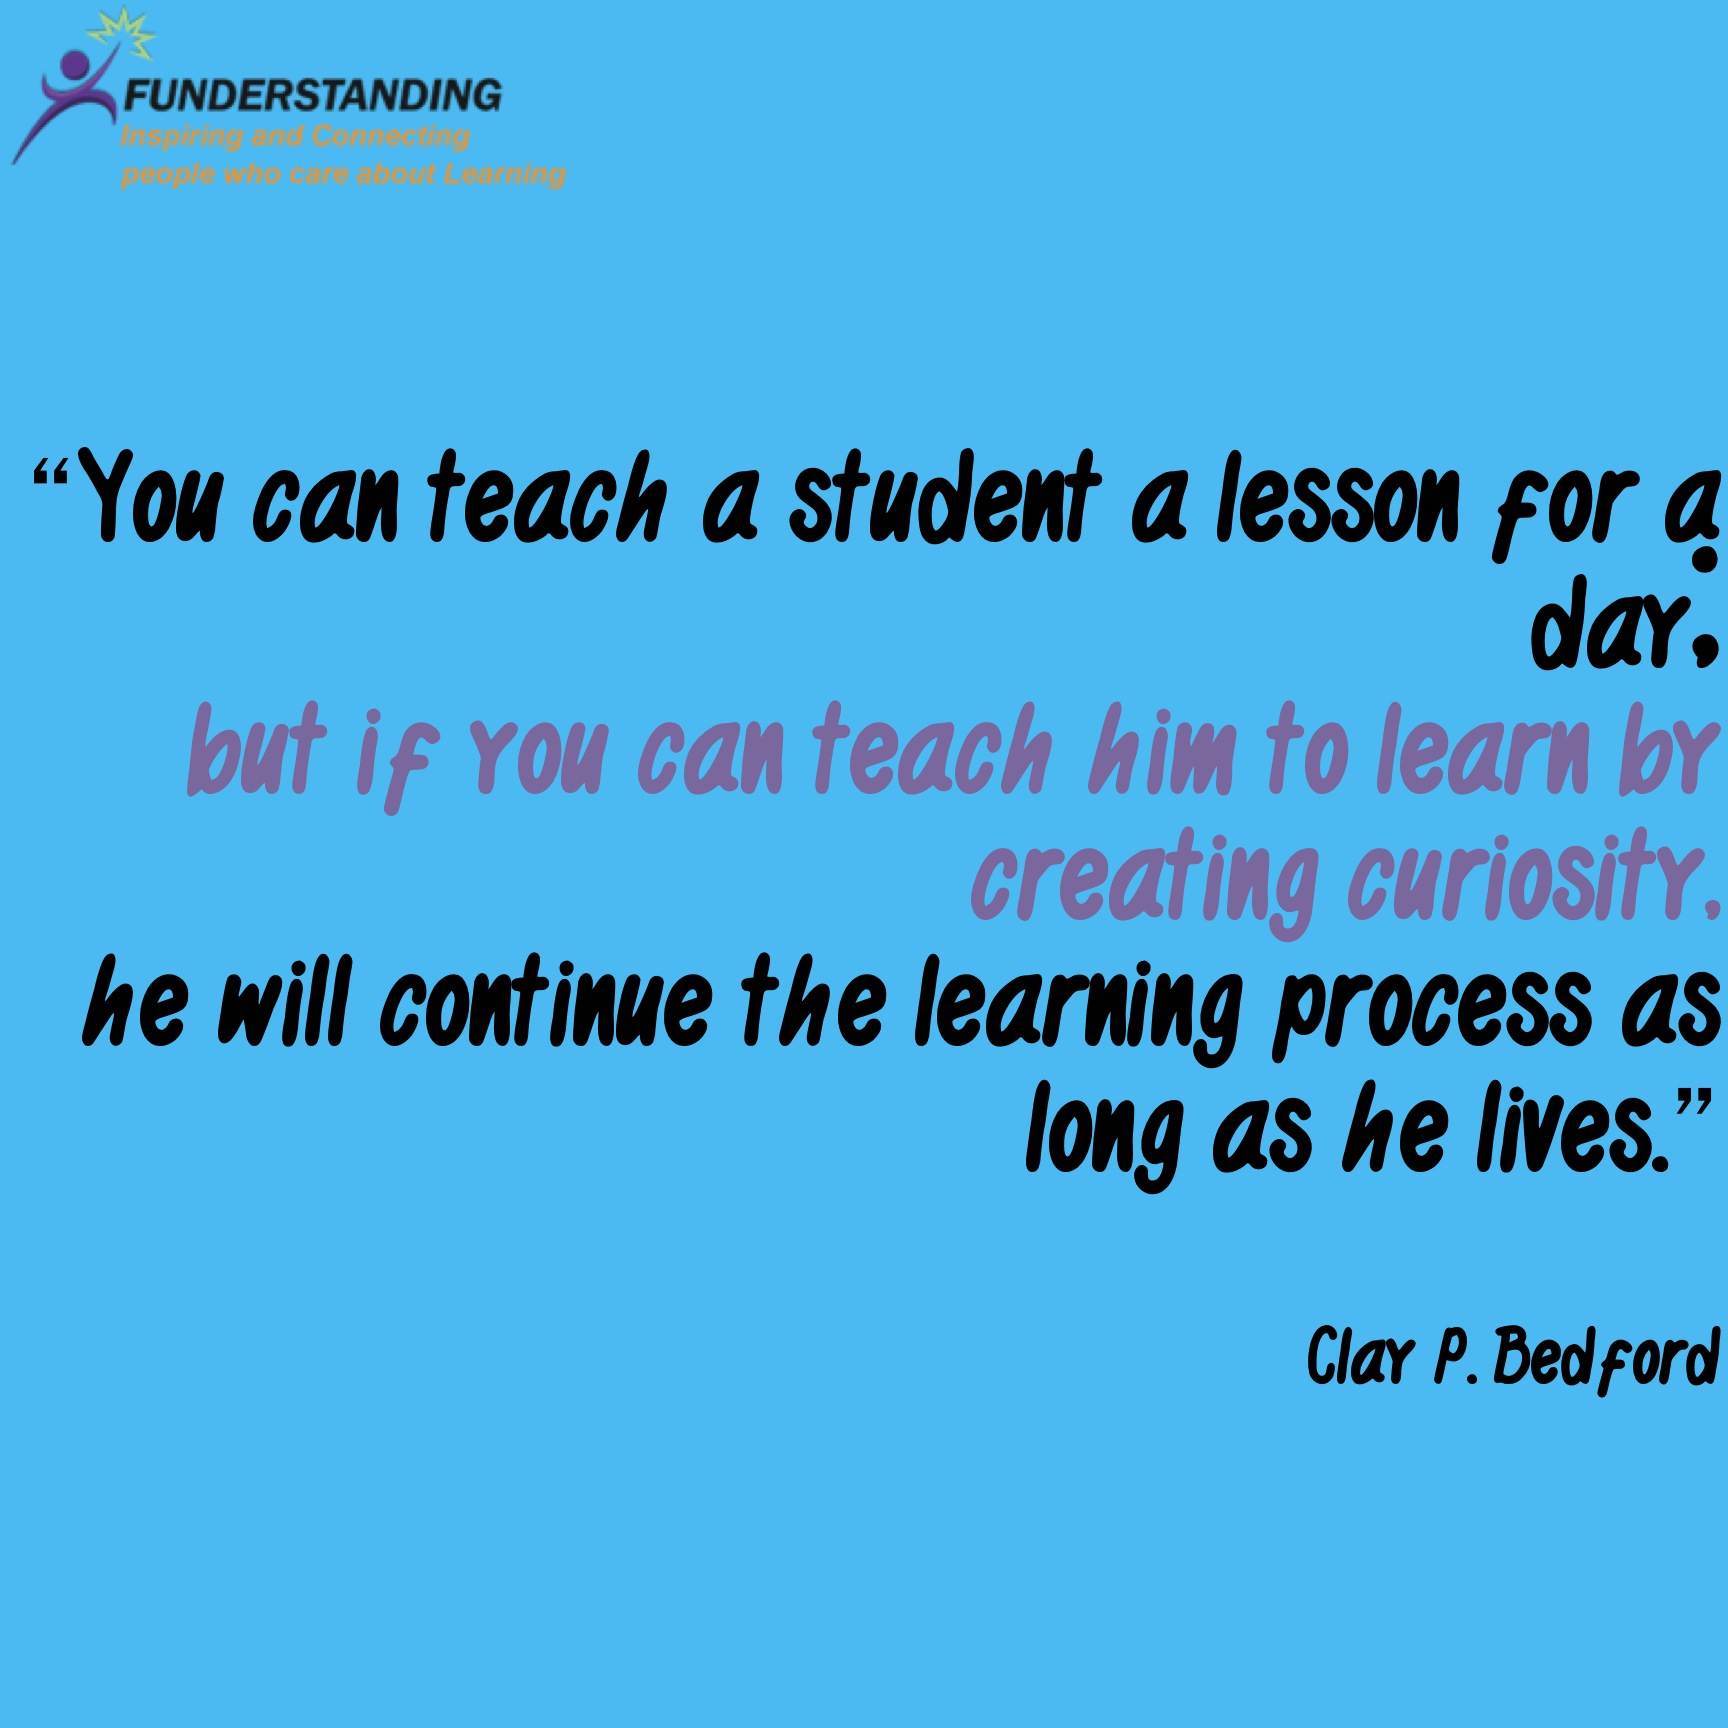 Quotes On Learning Educational Quotes  Funderstanding Education Curriculum And